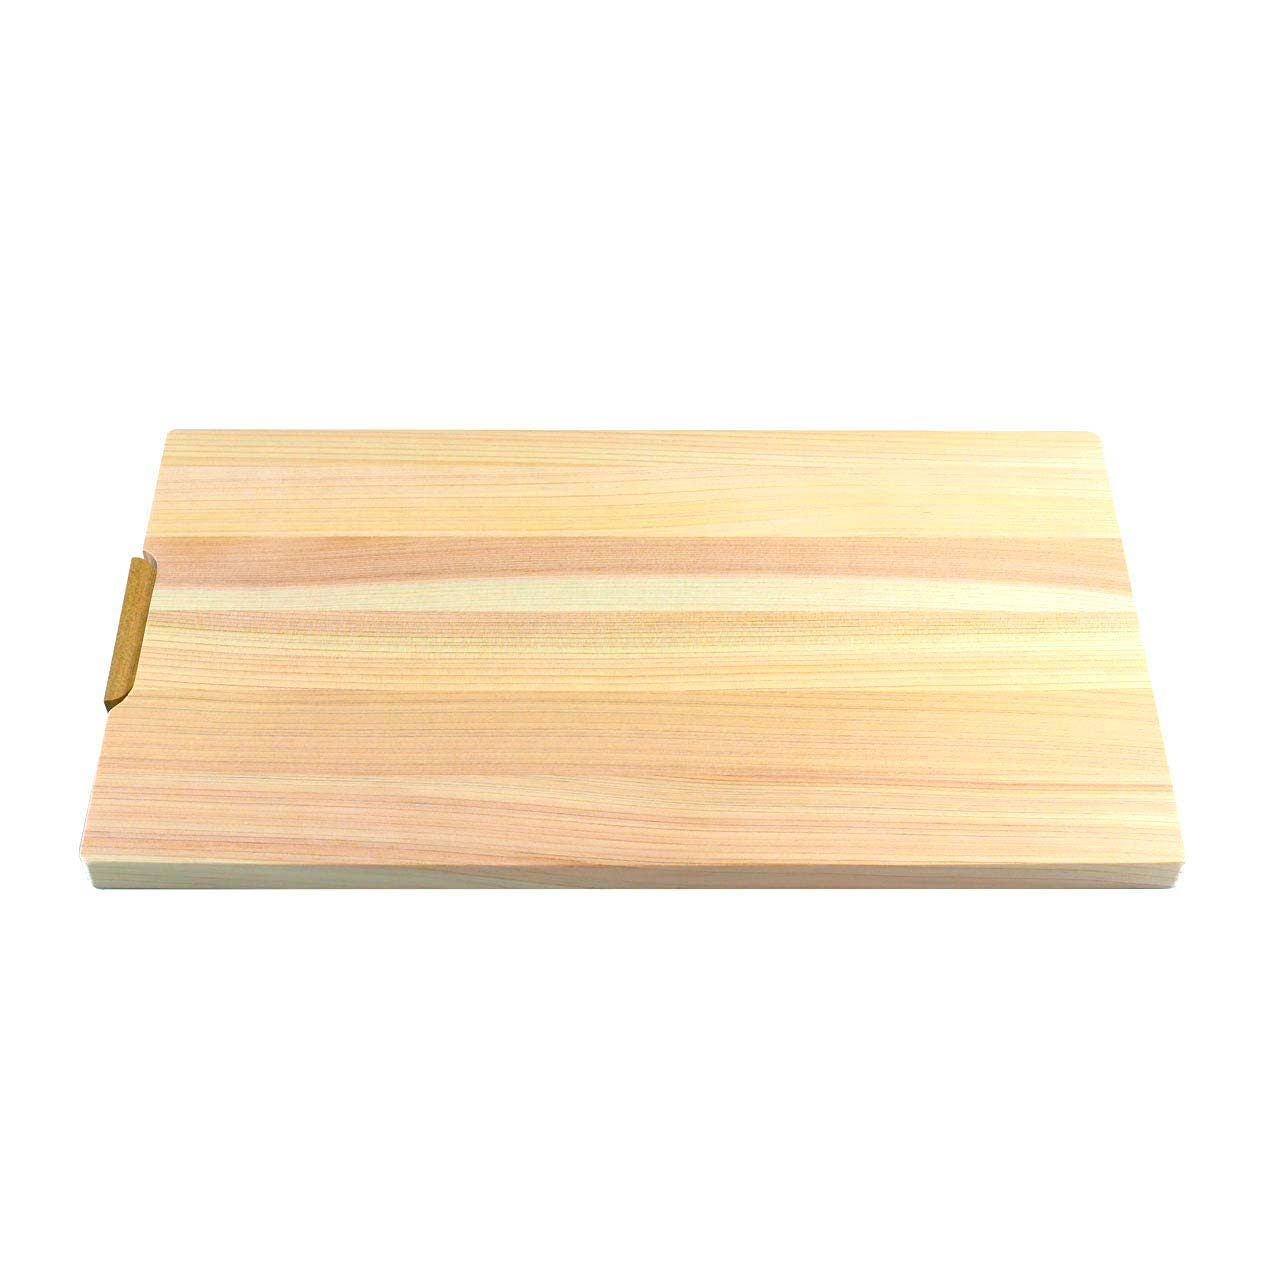 "Hinoki (Japanese Cypress) Cutting Board w/Stand 14.4"" x 7.9"" x 0.6"" ht"